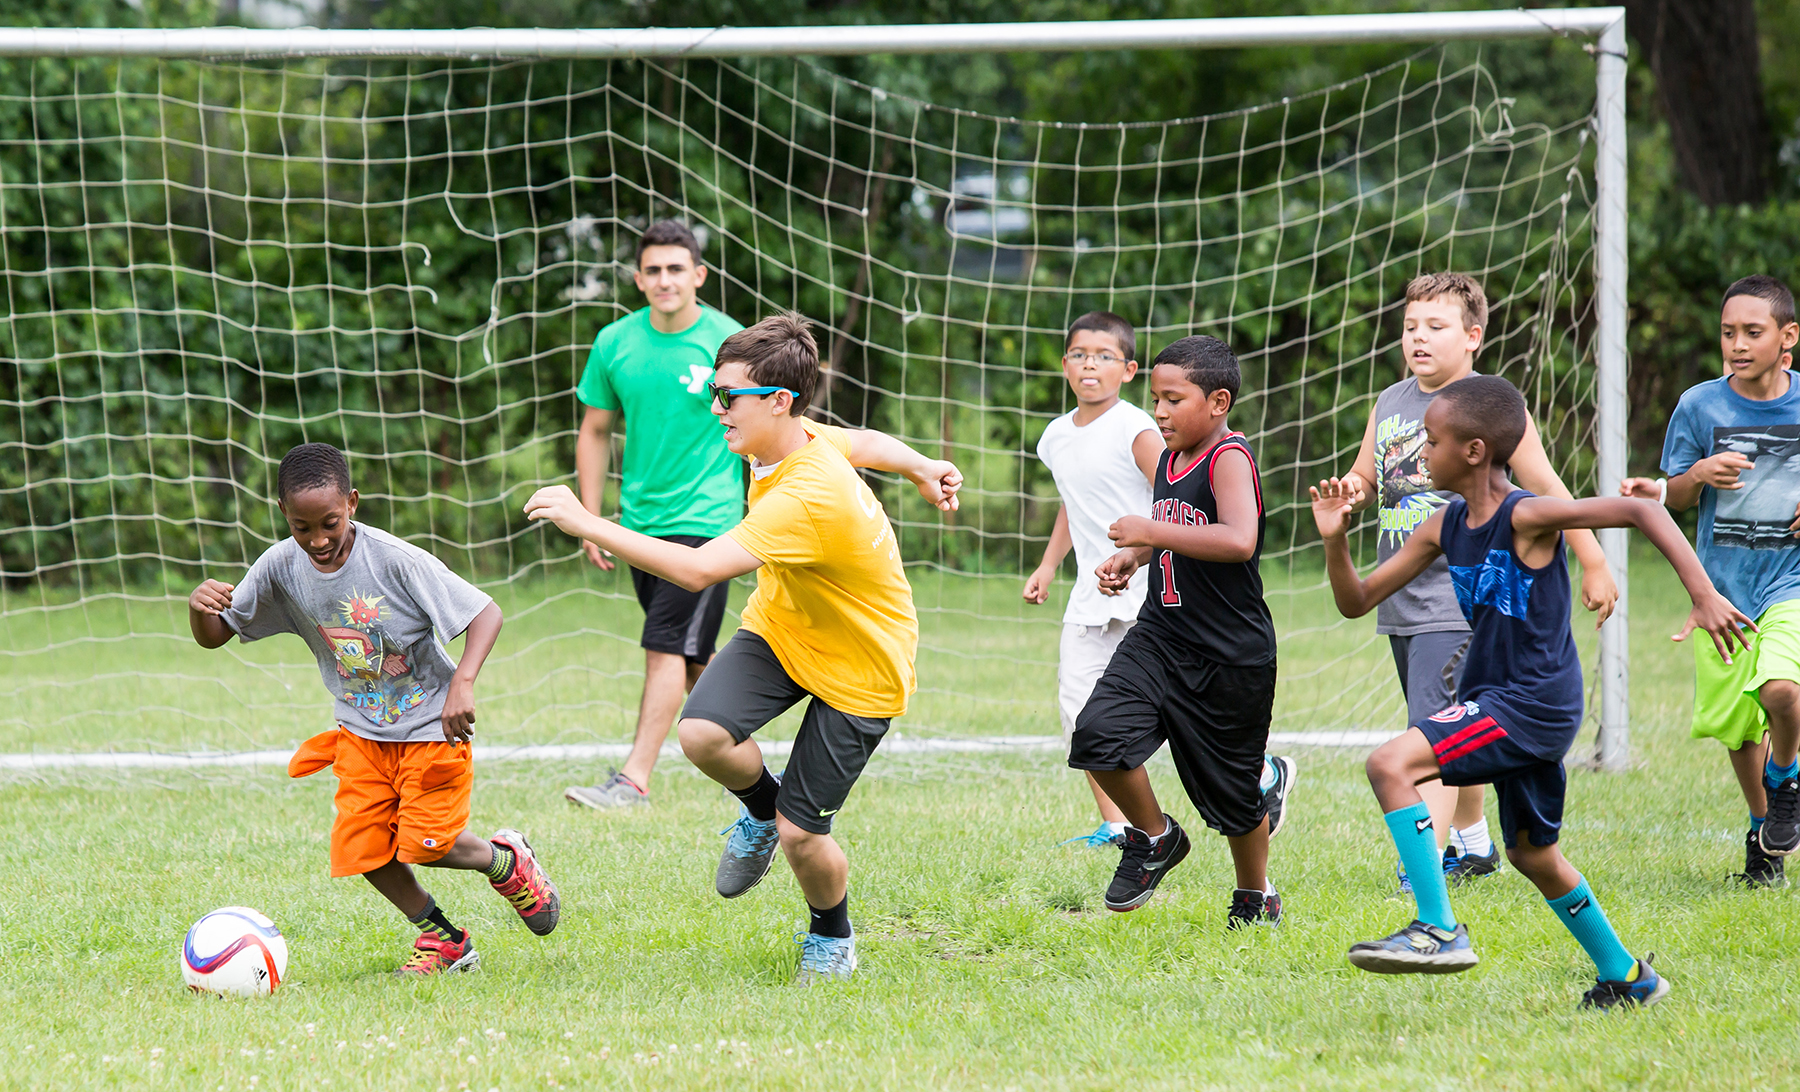 Best sports camp programs for kids in NYC |Sports Camp